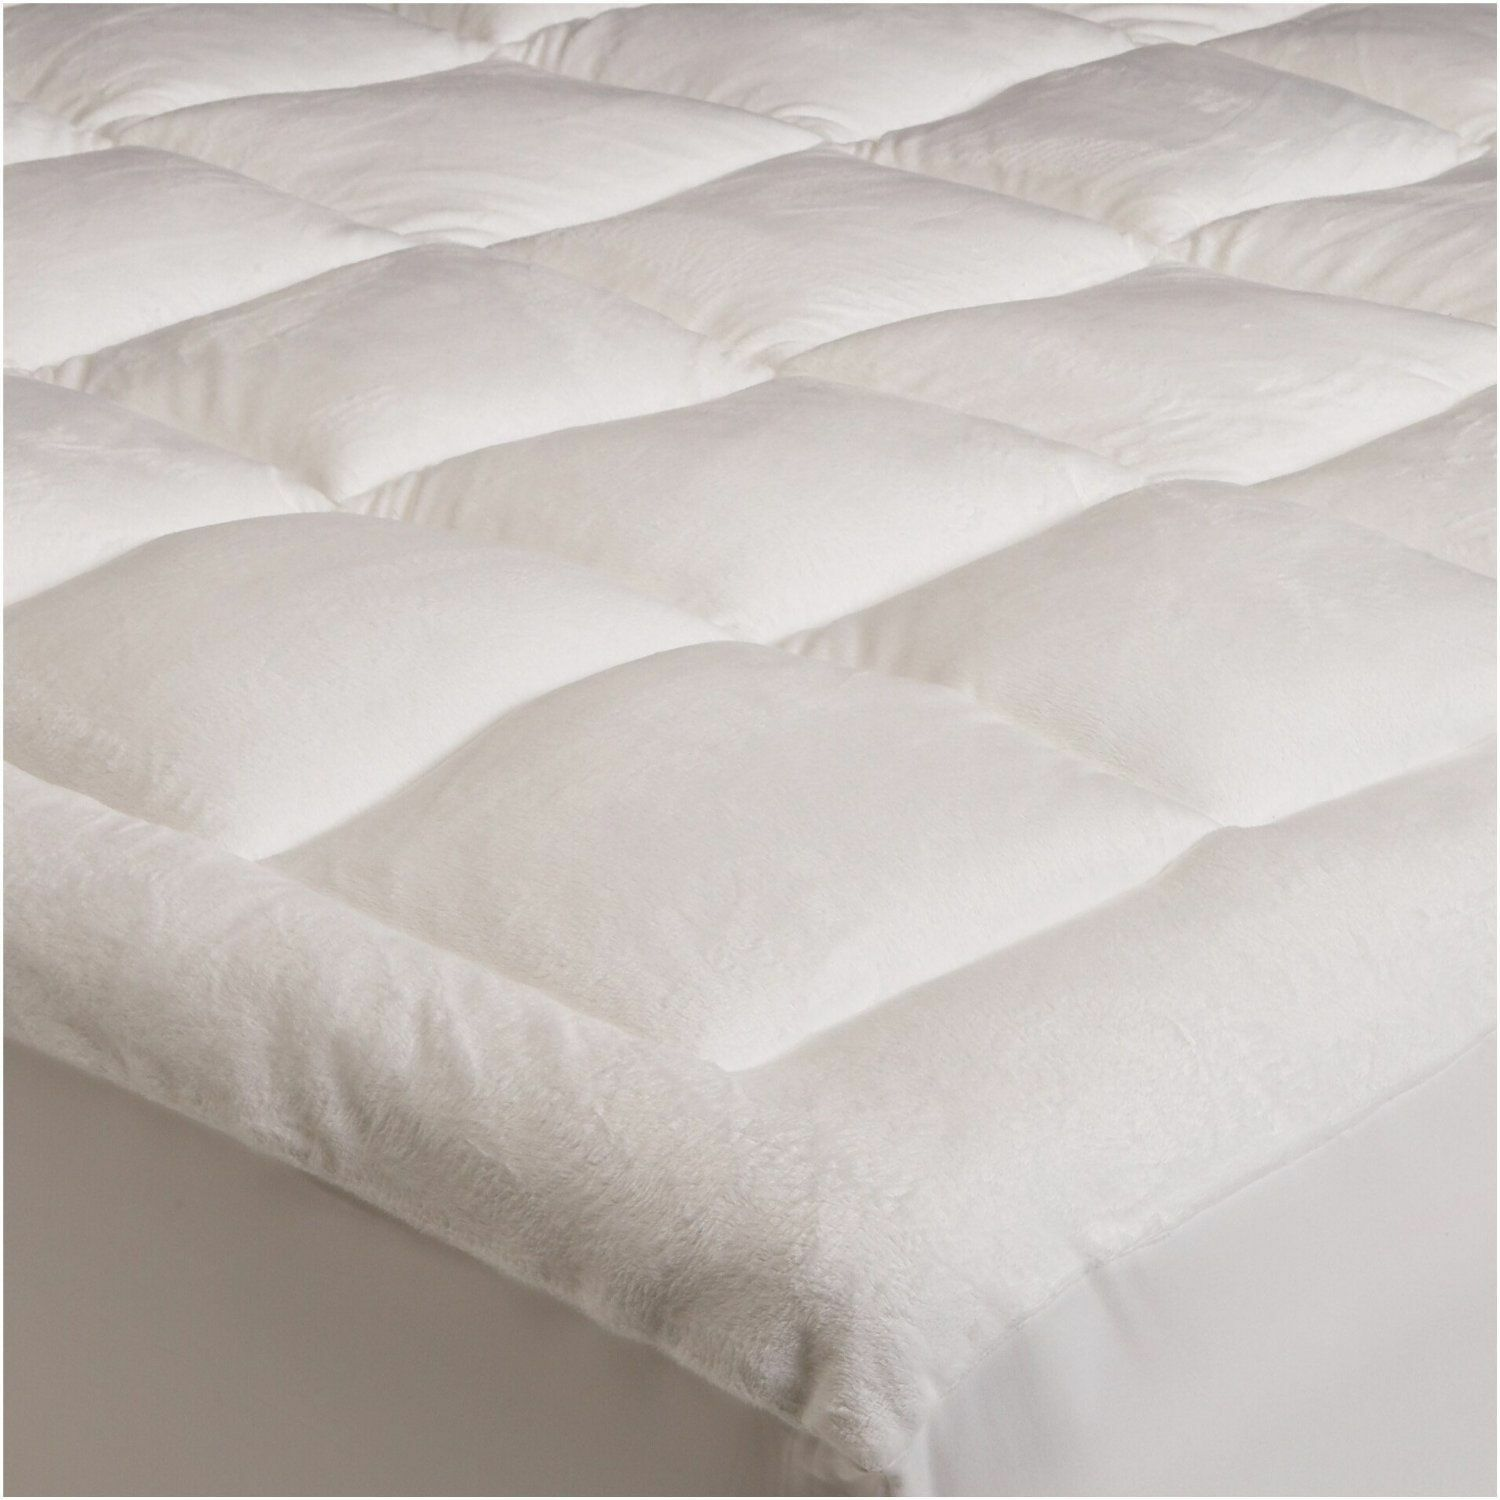 pinzon basics overfilled ultra soft microplush